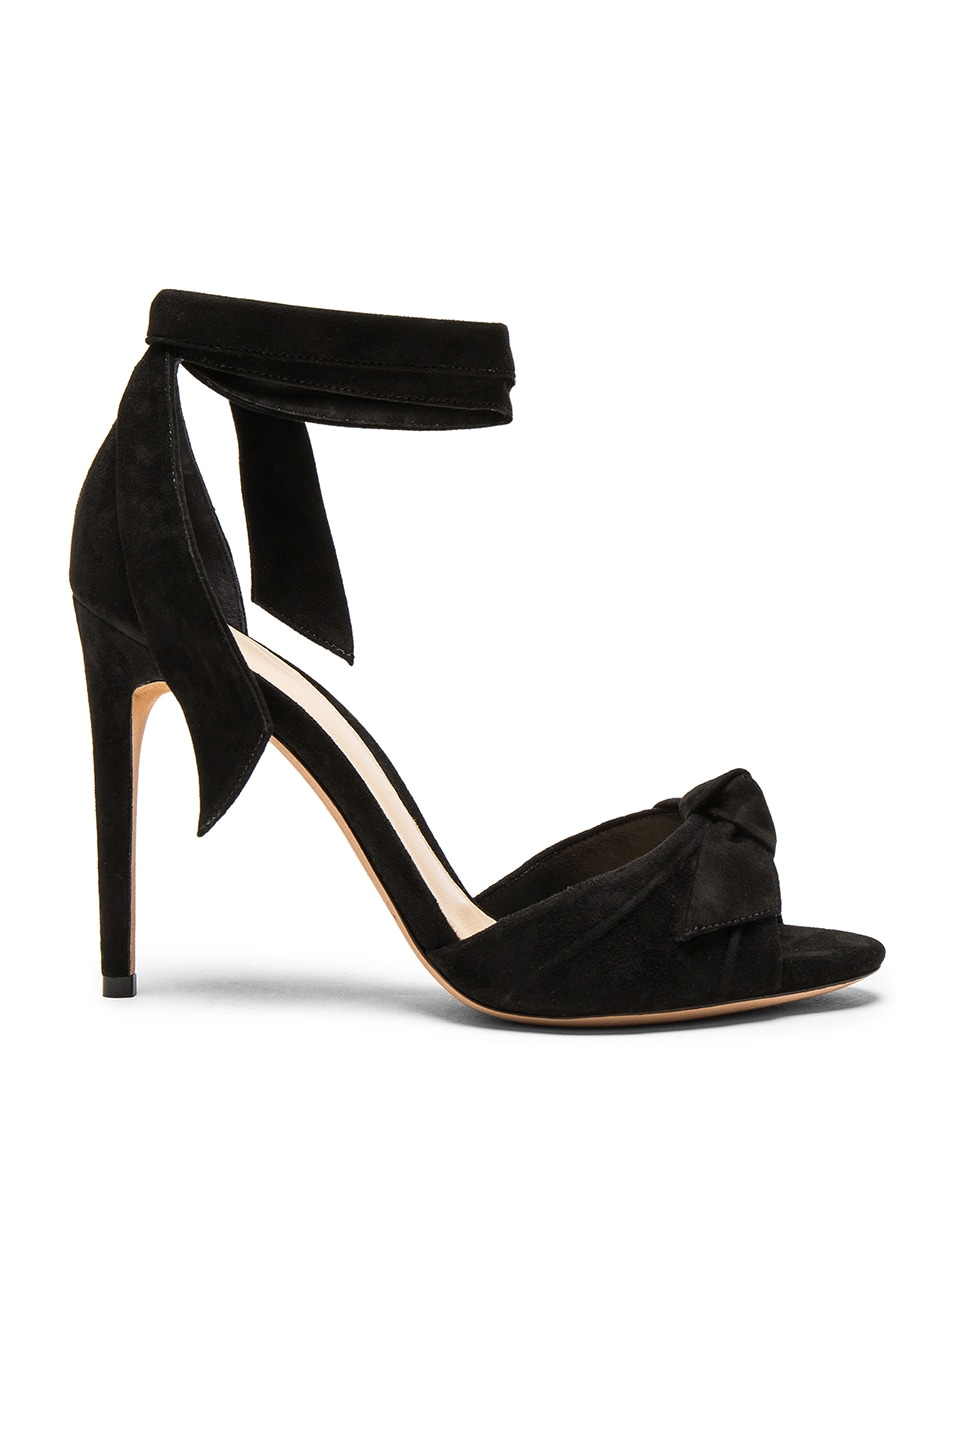 Image 1 of Alexandre Birman Suede New Clarita Heels in Black